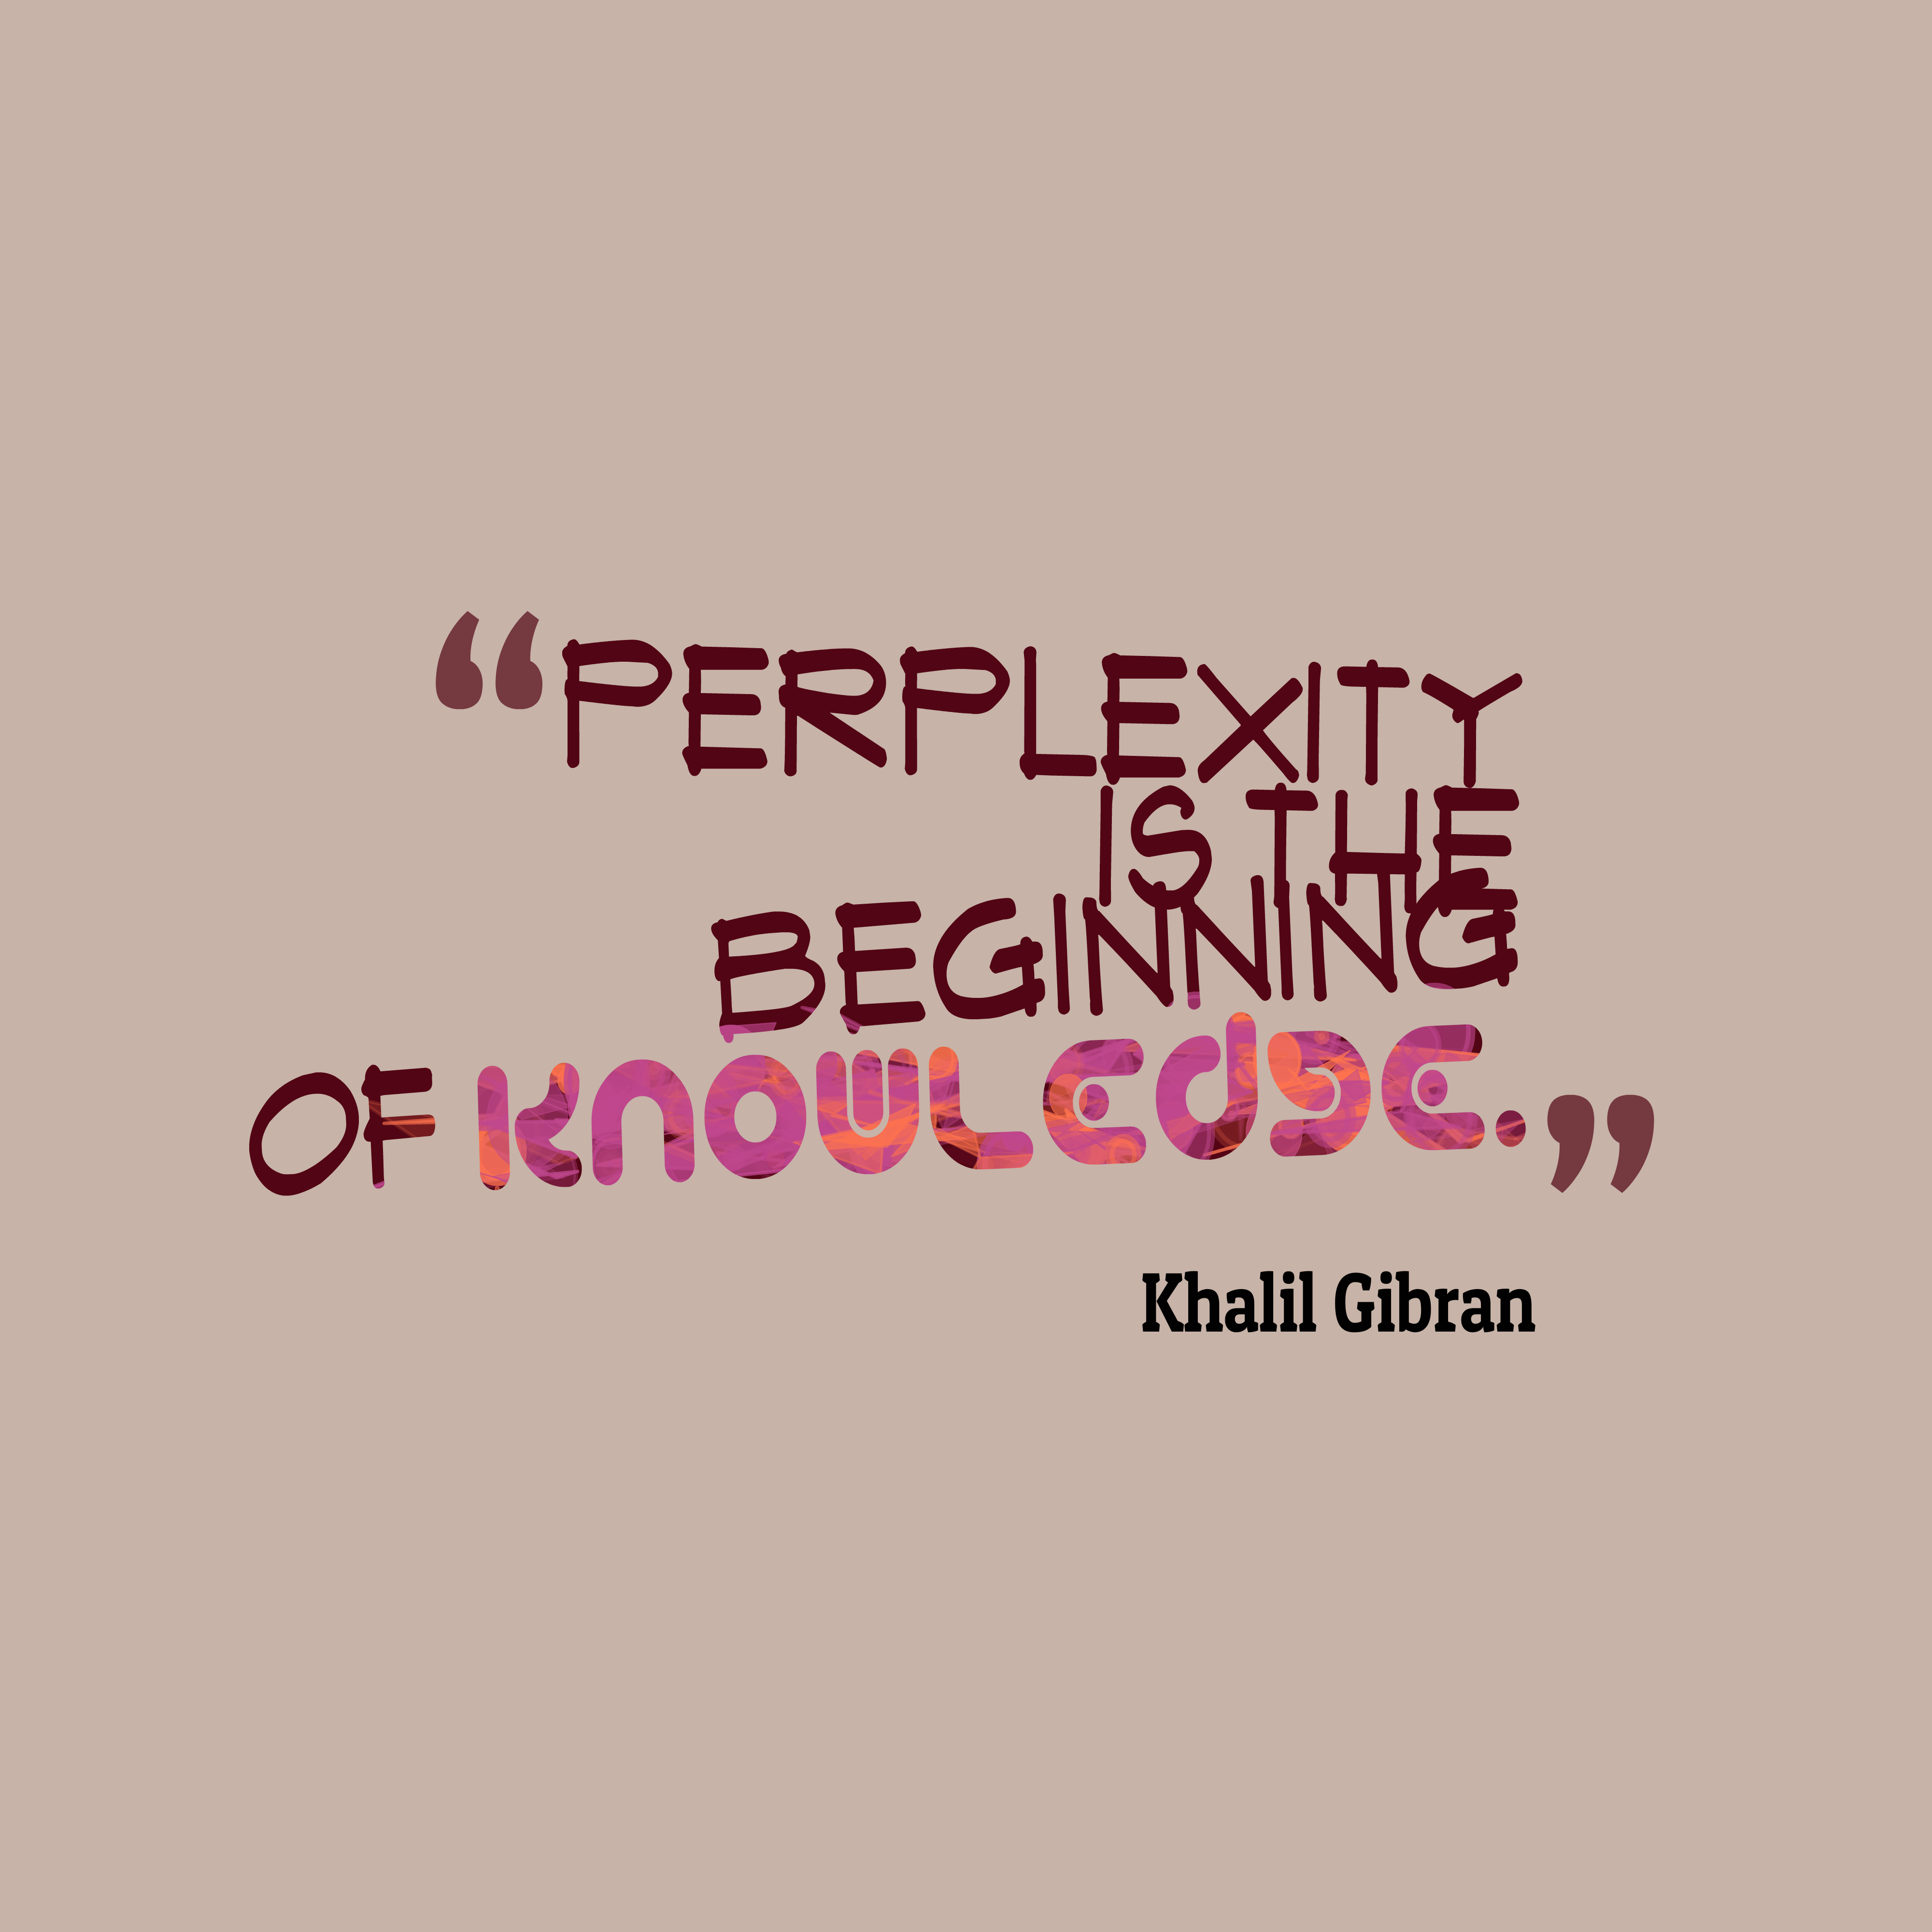 Quotes About Love: 51 Best Kahlil Gibran Quotes Images